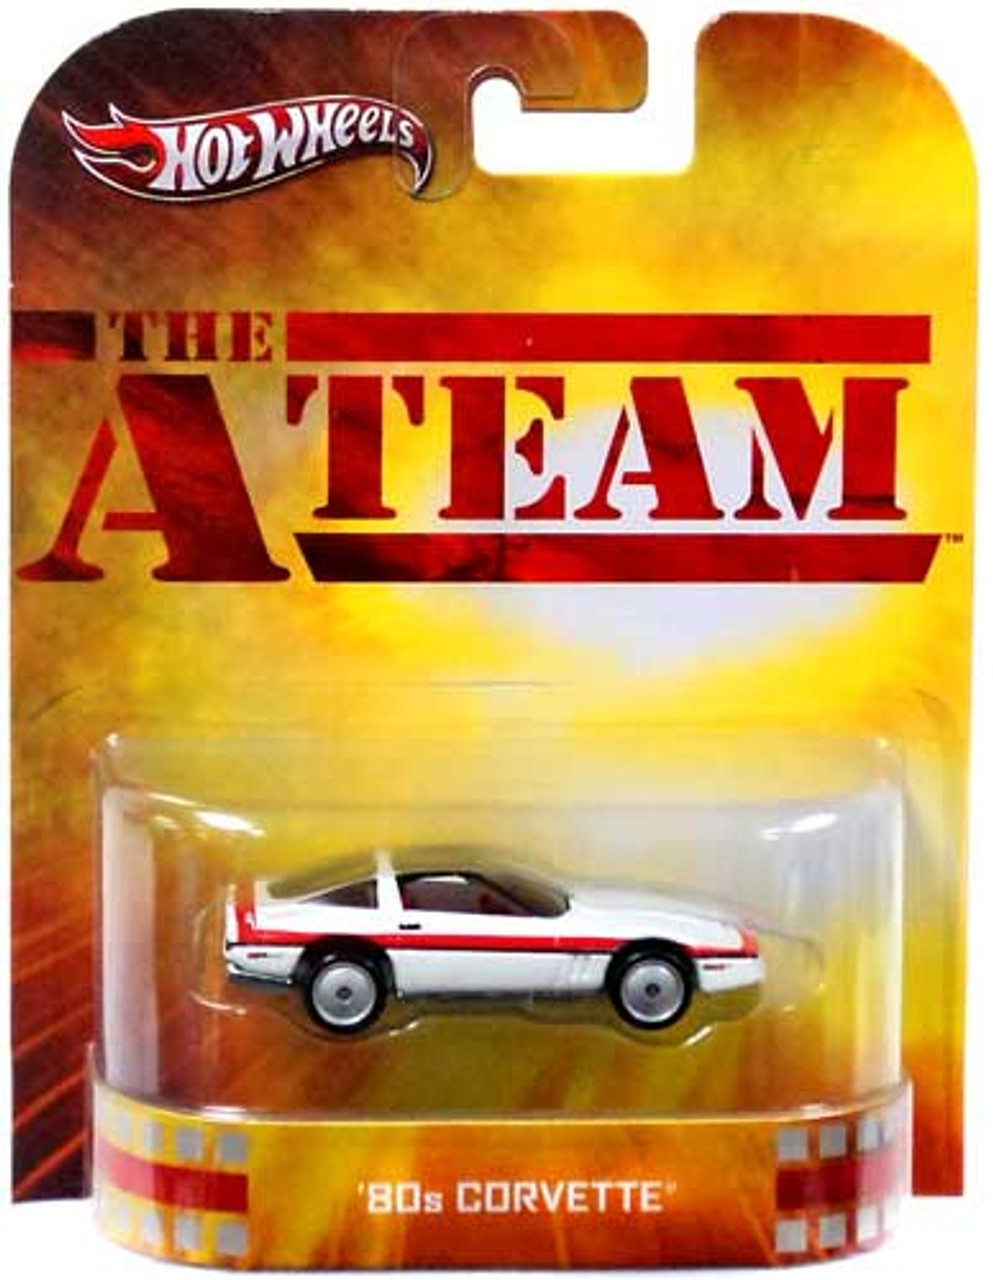 The A-Team Hot Wheels Retro '80s Corvette Diecast Vehicle